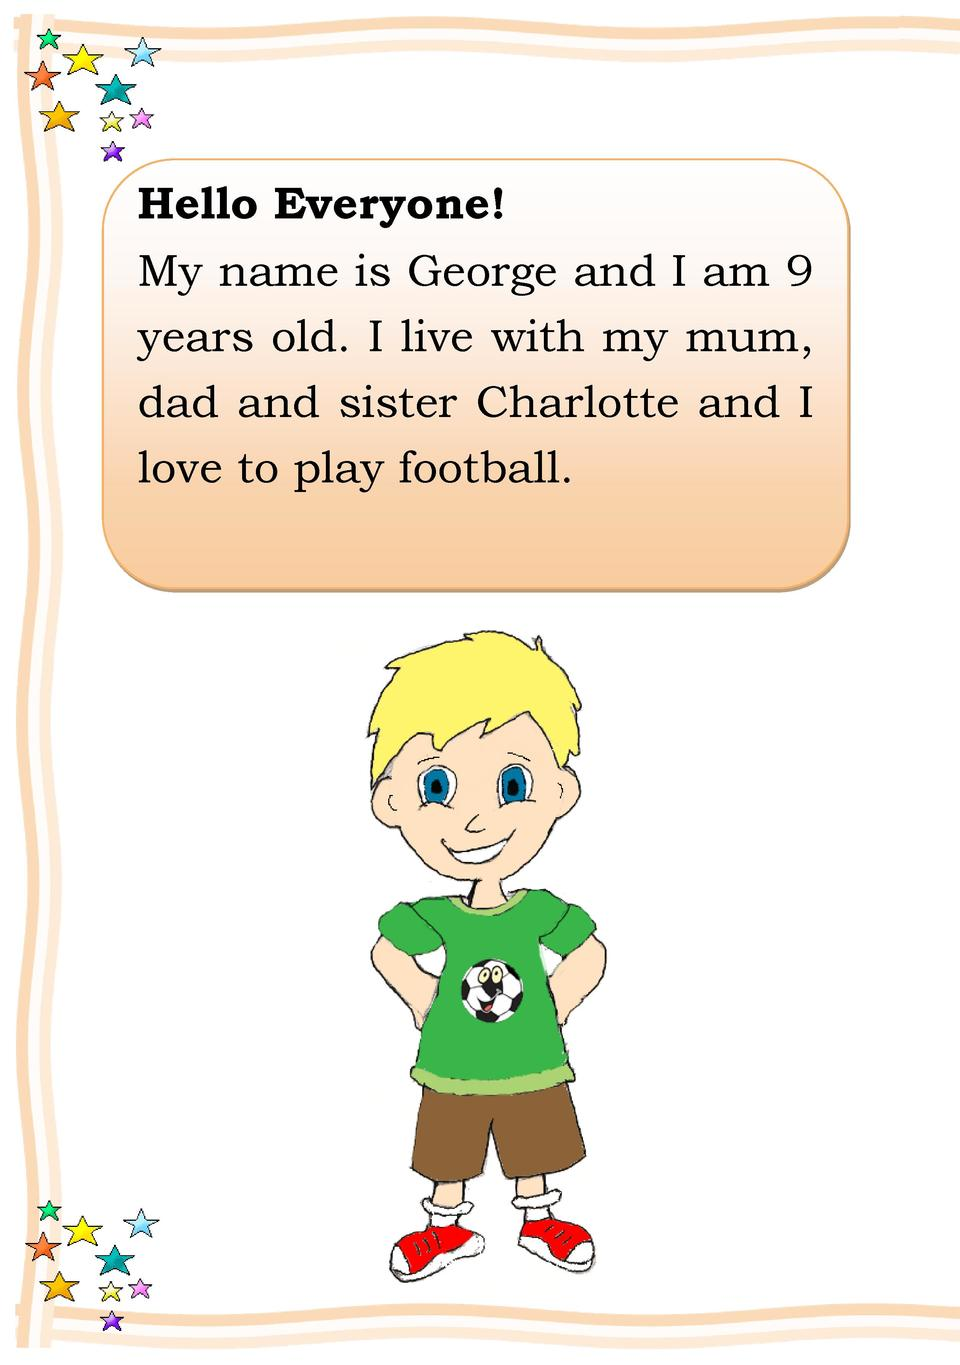 Hello Everyone  My name is George and I am 9 years old. I live with my mum, dad and sister Charlotte and I love to play fo...